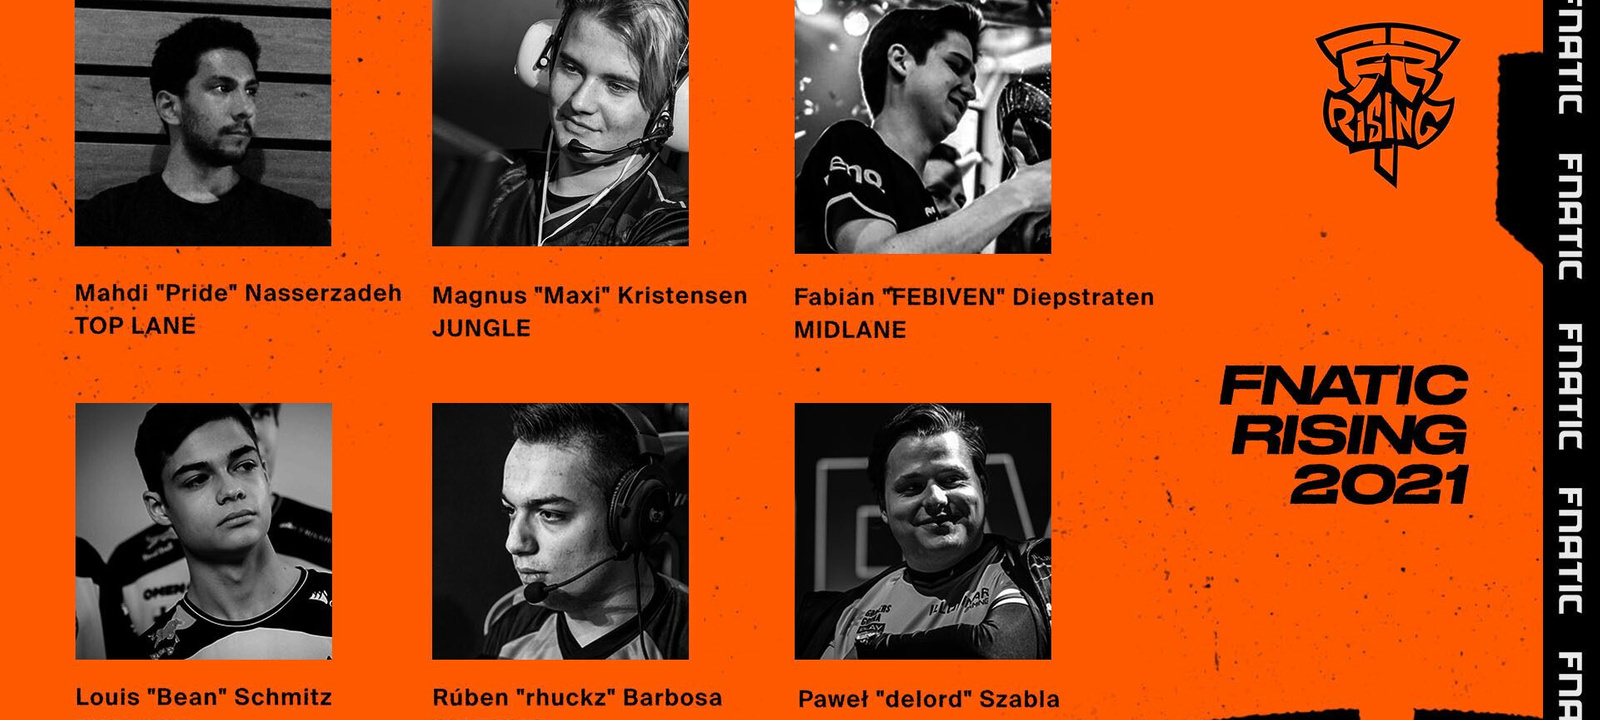 Five join Fnatic Rising for 2021